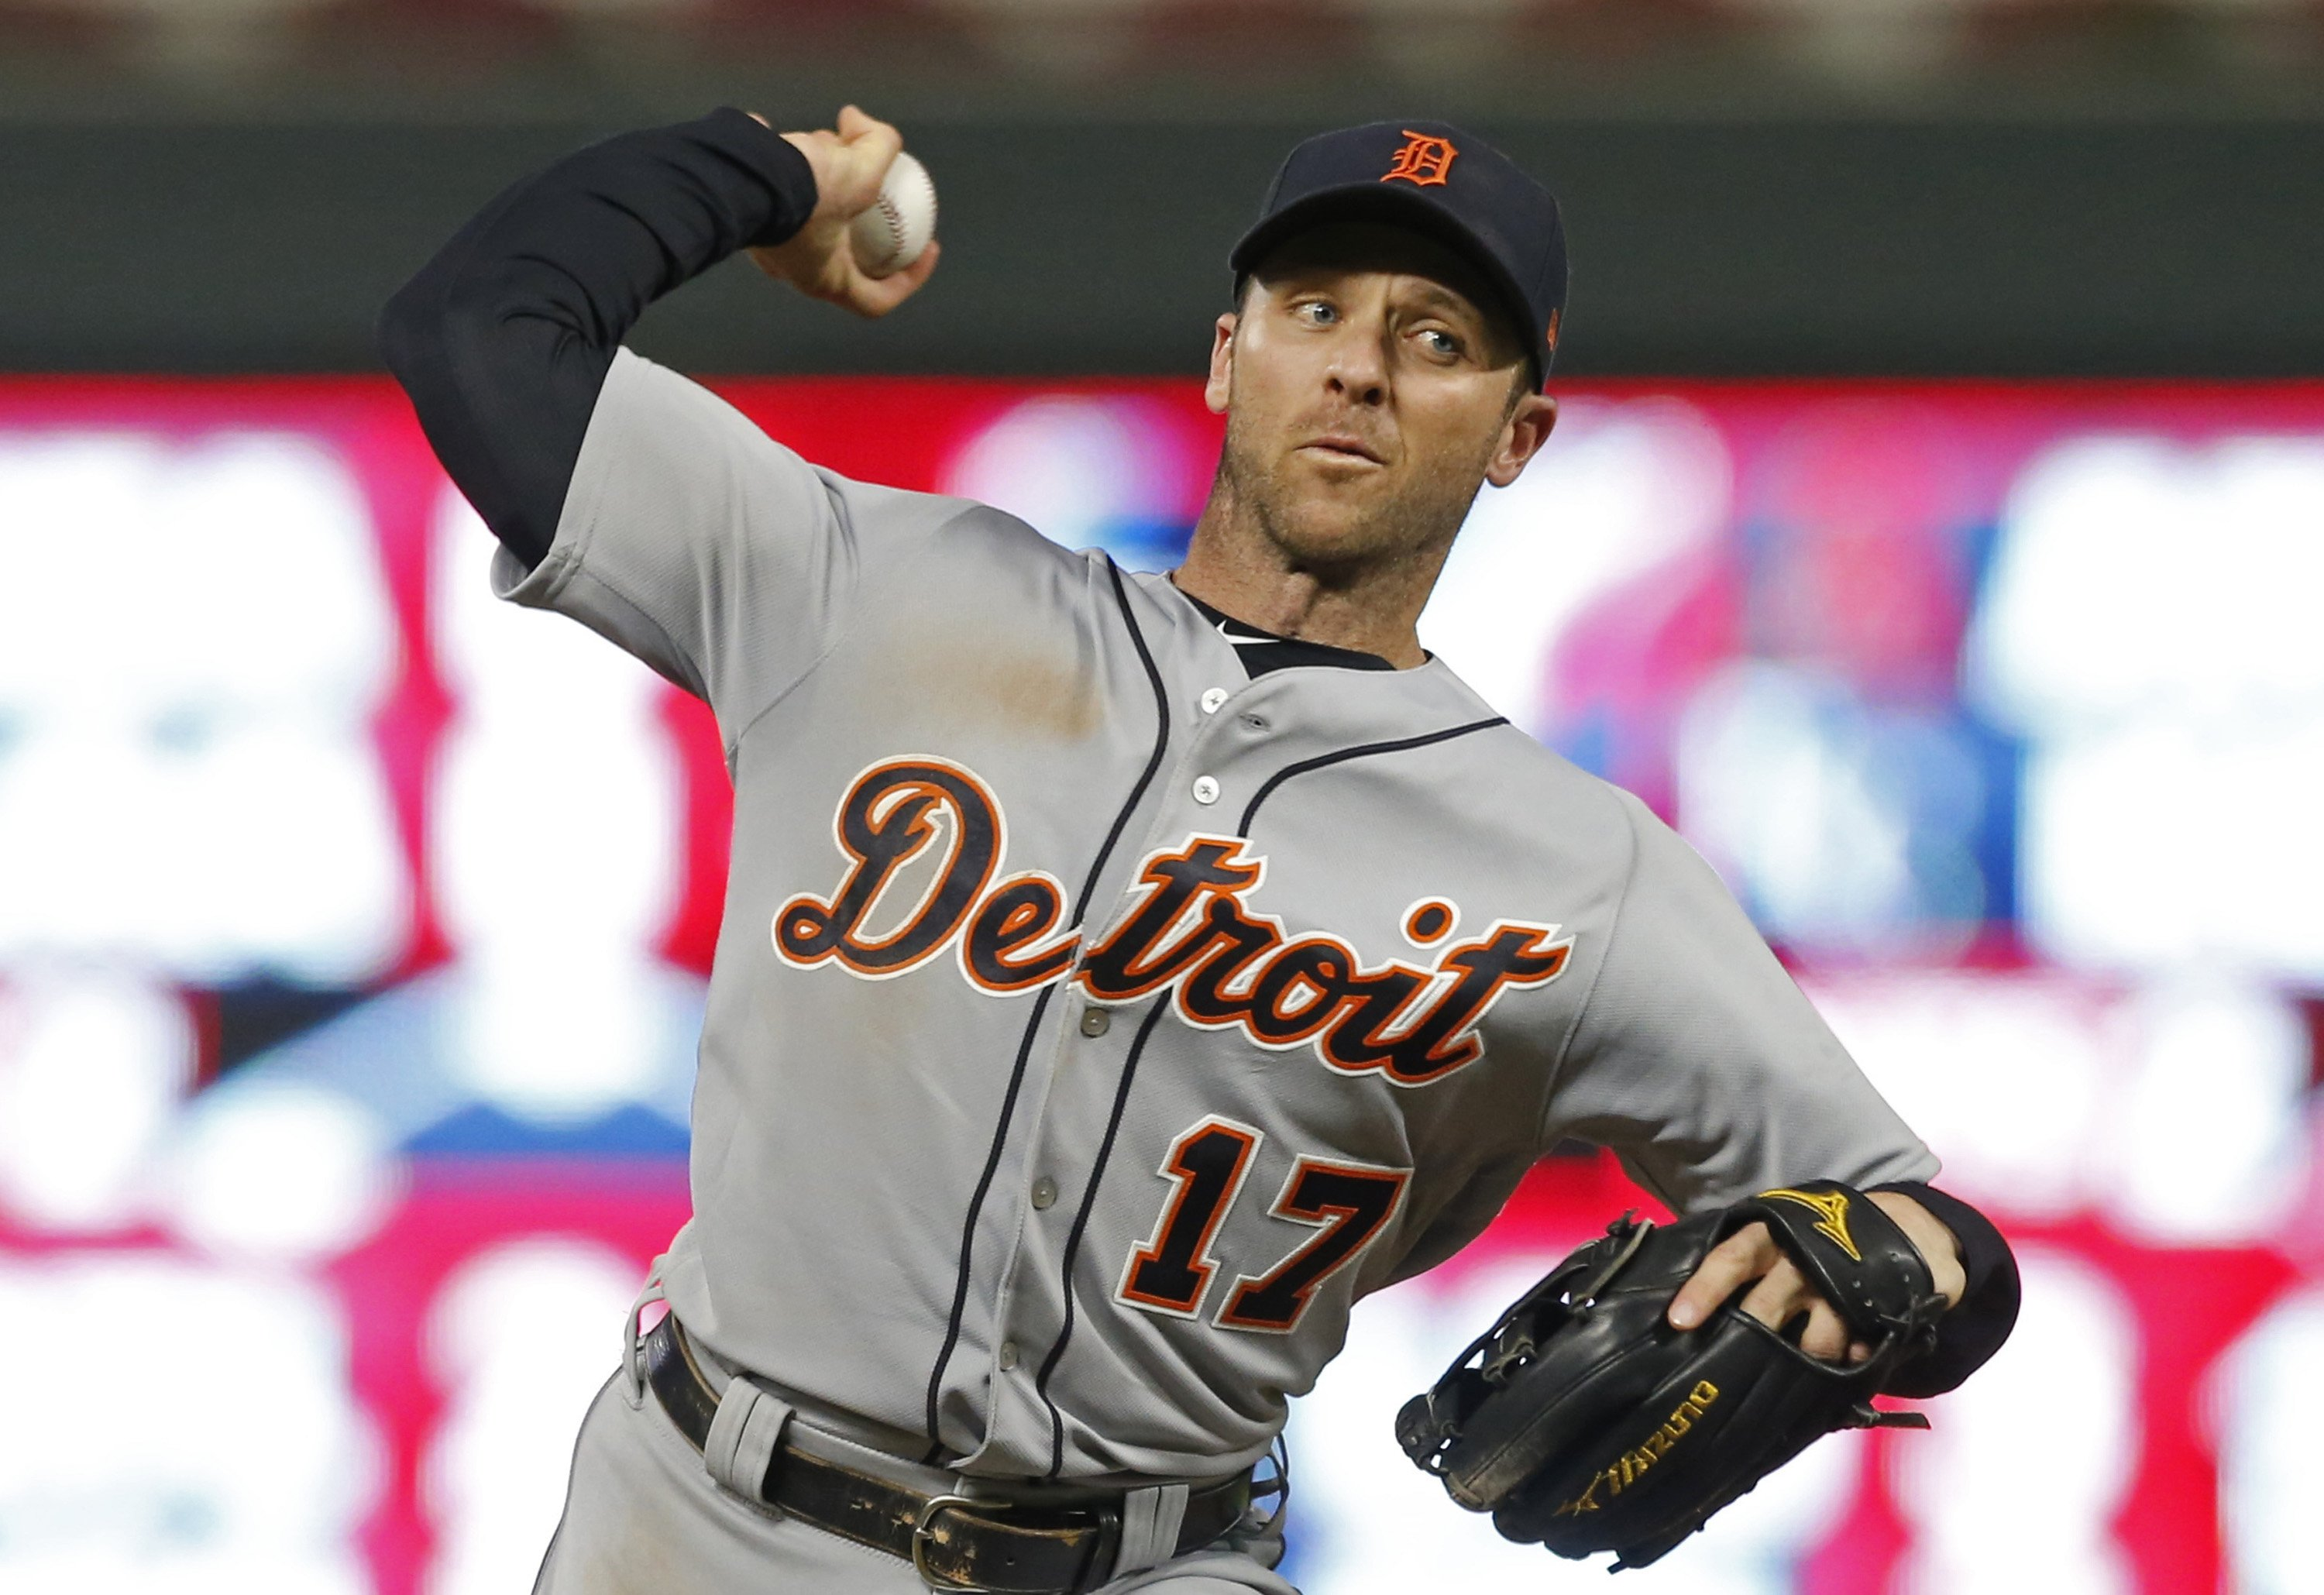 Around The Horn: Romine plays all 9 positions for Tigers